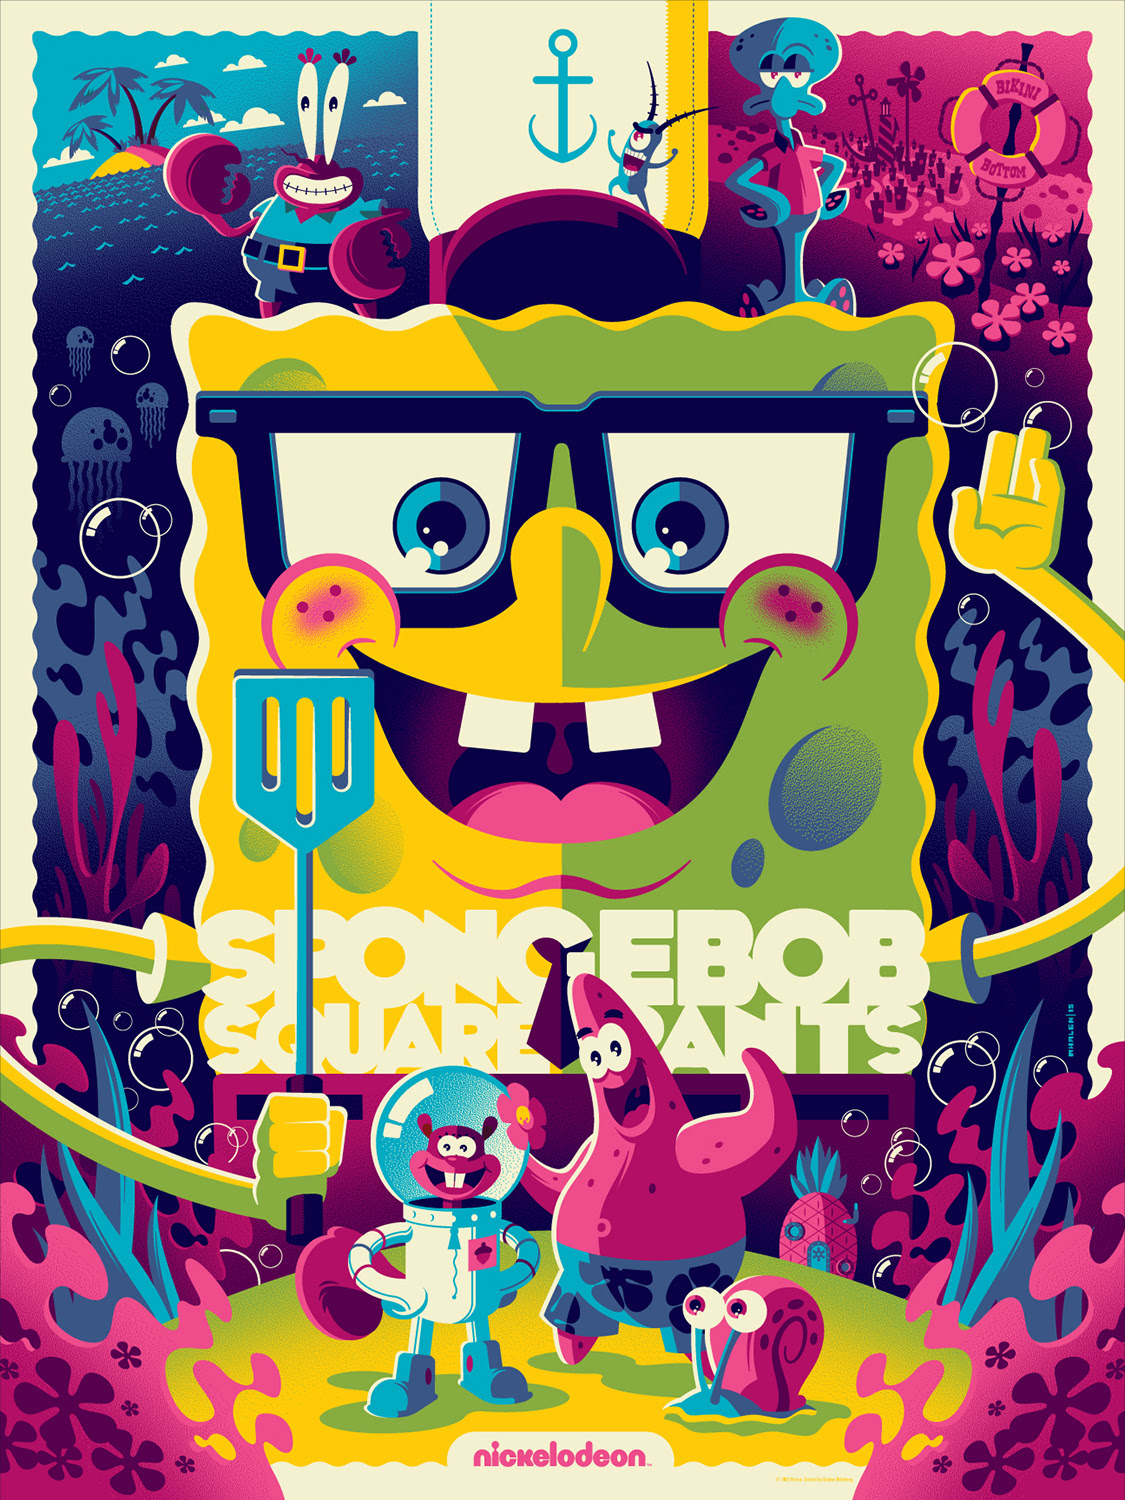 "Spongebob Squarepants (Variant) by Tom Whalen. 18""x24"" screen print. Hand numbered. Edition of 175. Printed by D&L Screenprinting. $60"